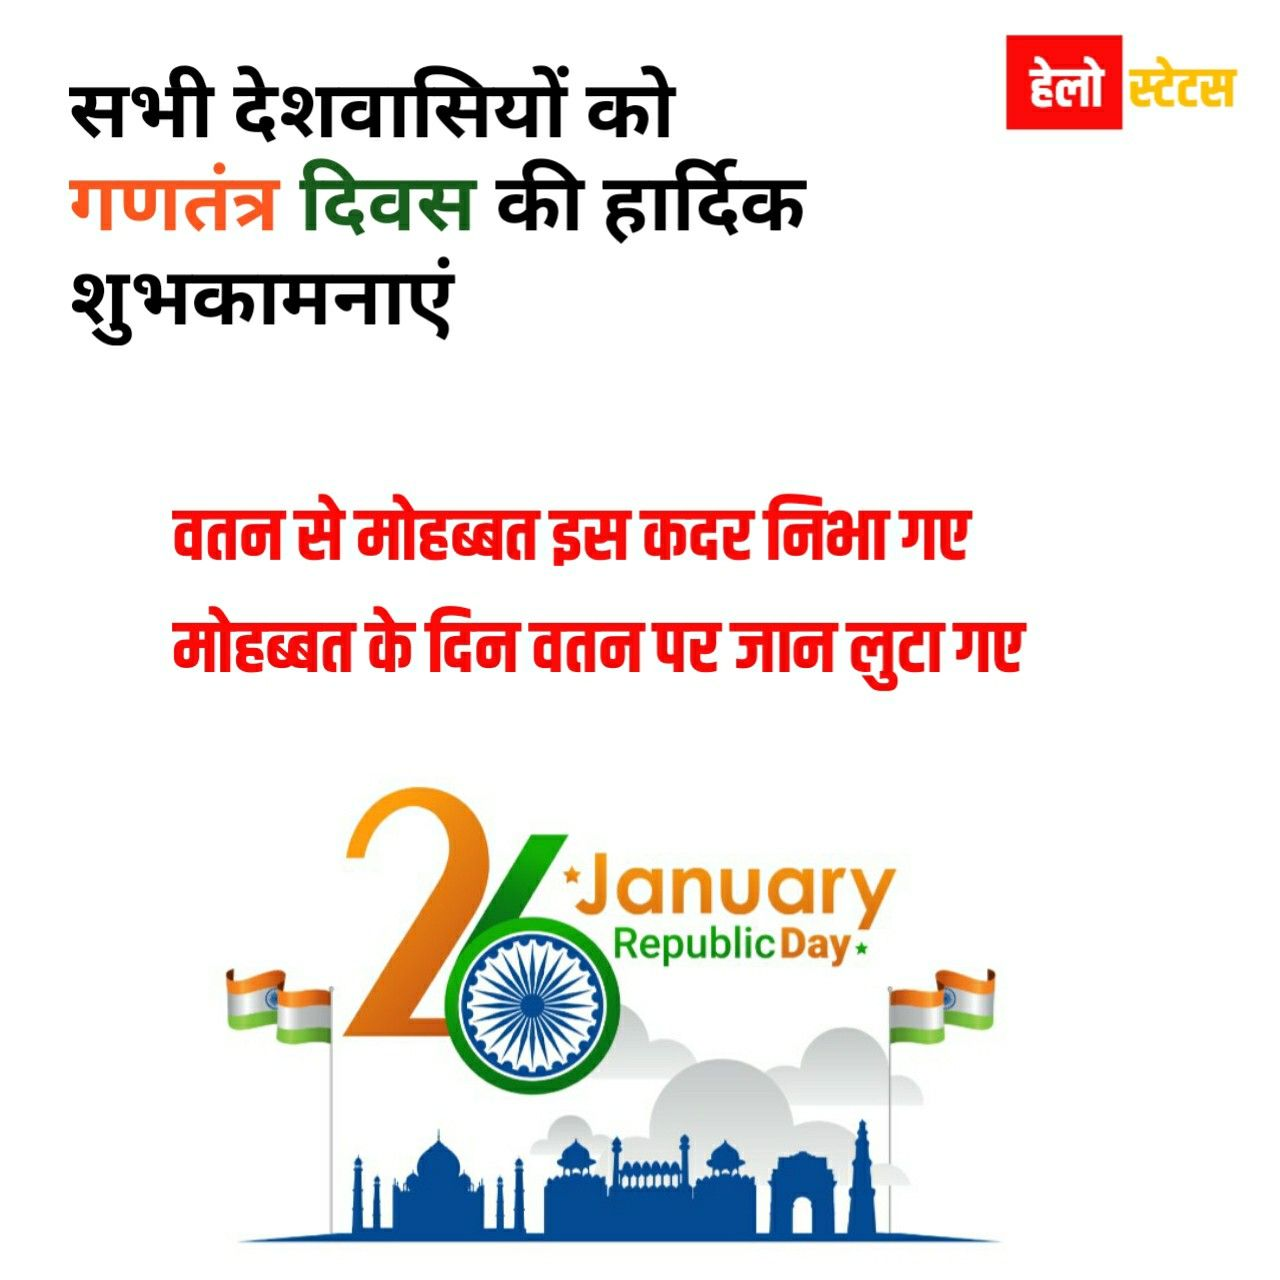 Happy Republic Day 2021 Wishes Images Pic Photo Wallpaper Quotes In Hindi In 2021 Republic Day Status Republic Day Status Hindi